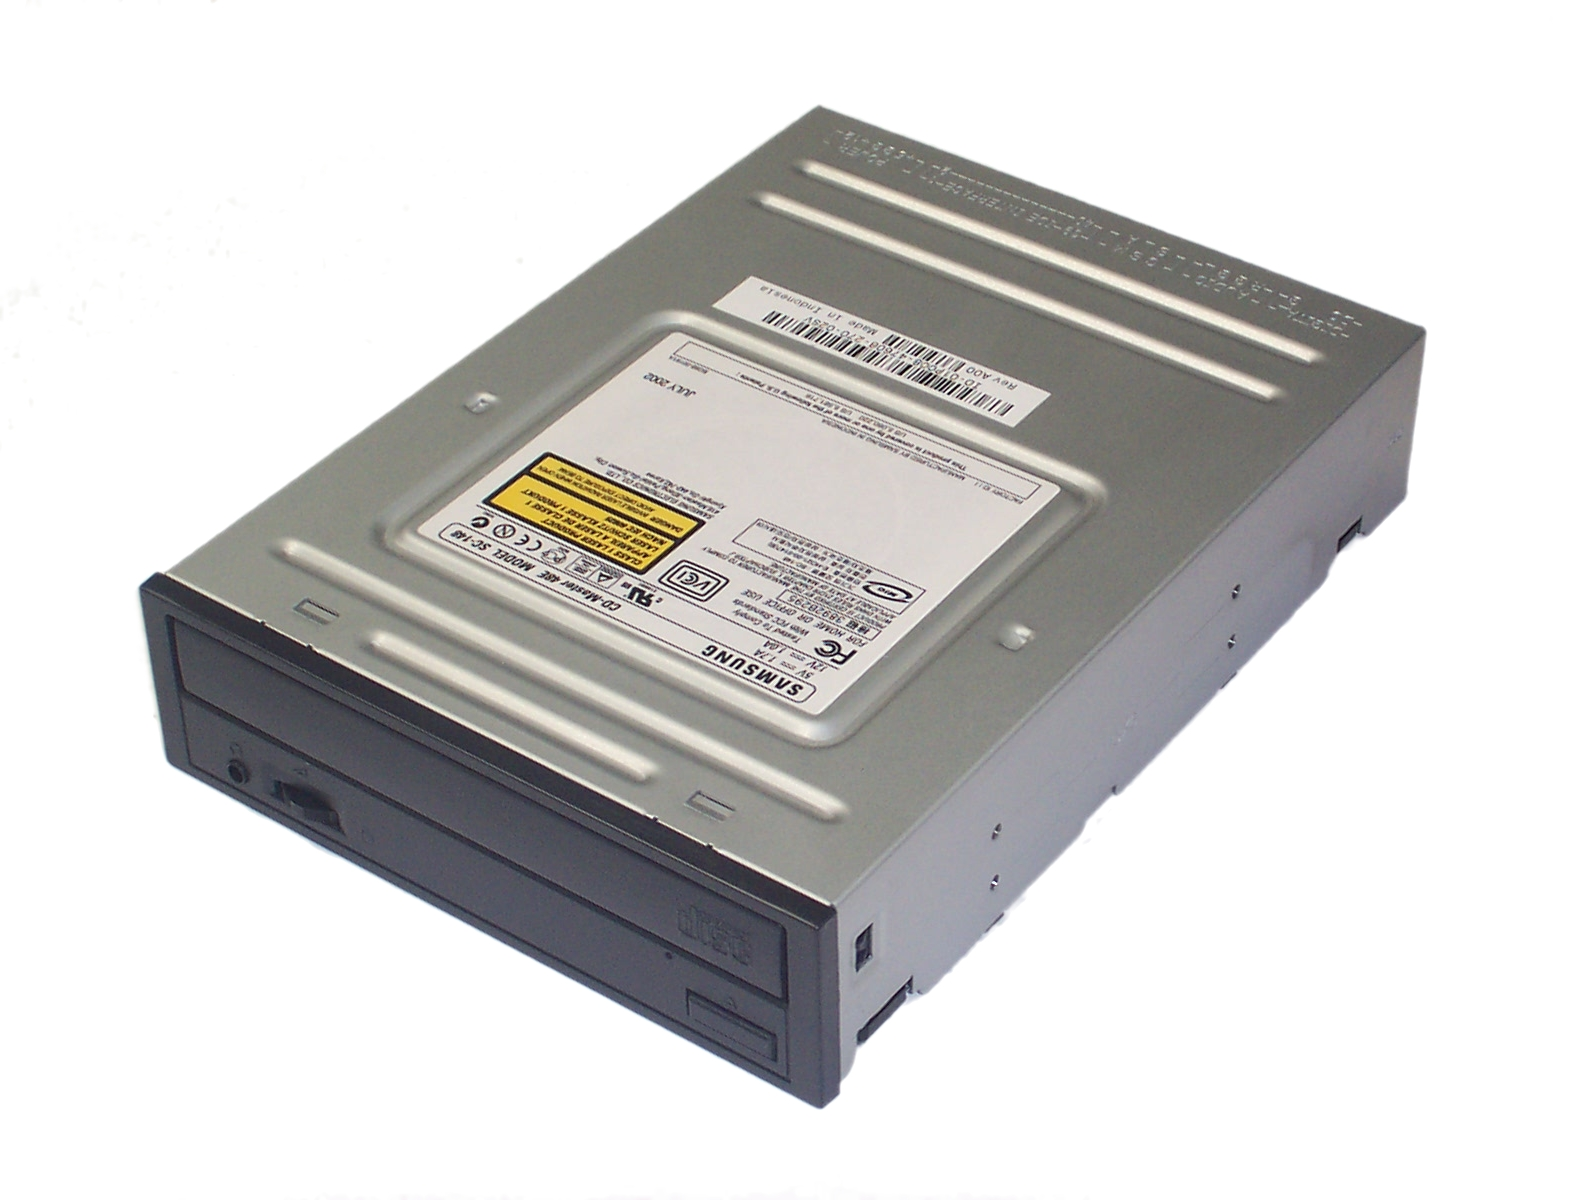 Drives, Storage & Blank Media Samsung Sc-148 48x Cdrom Drive